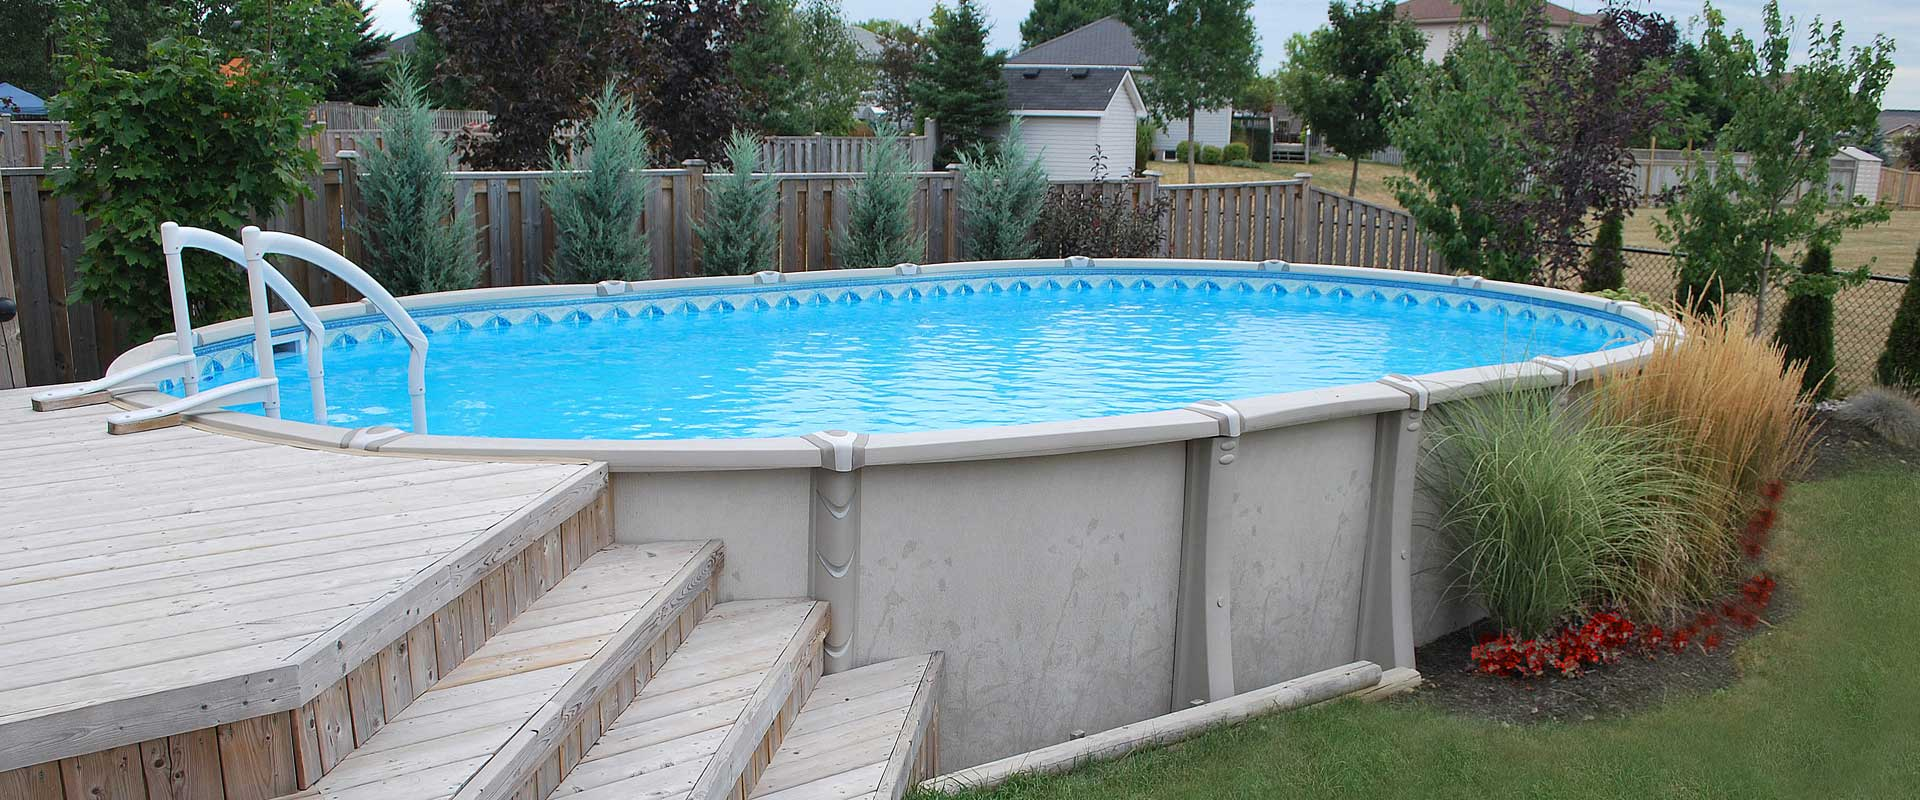 Above Ground Pools Resin Amp Steel Pioneer Family Pools